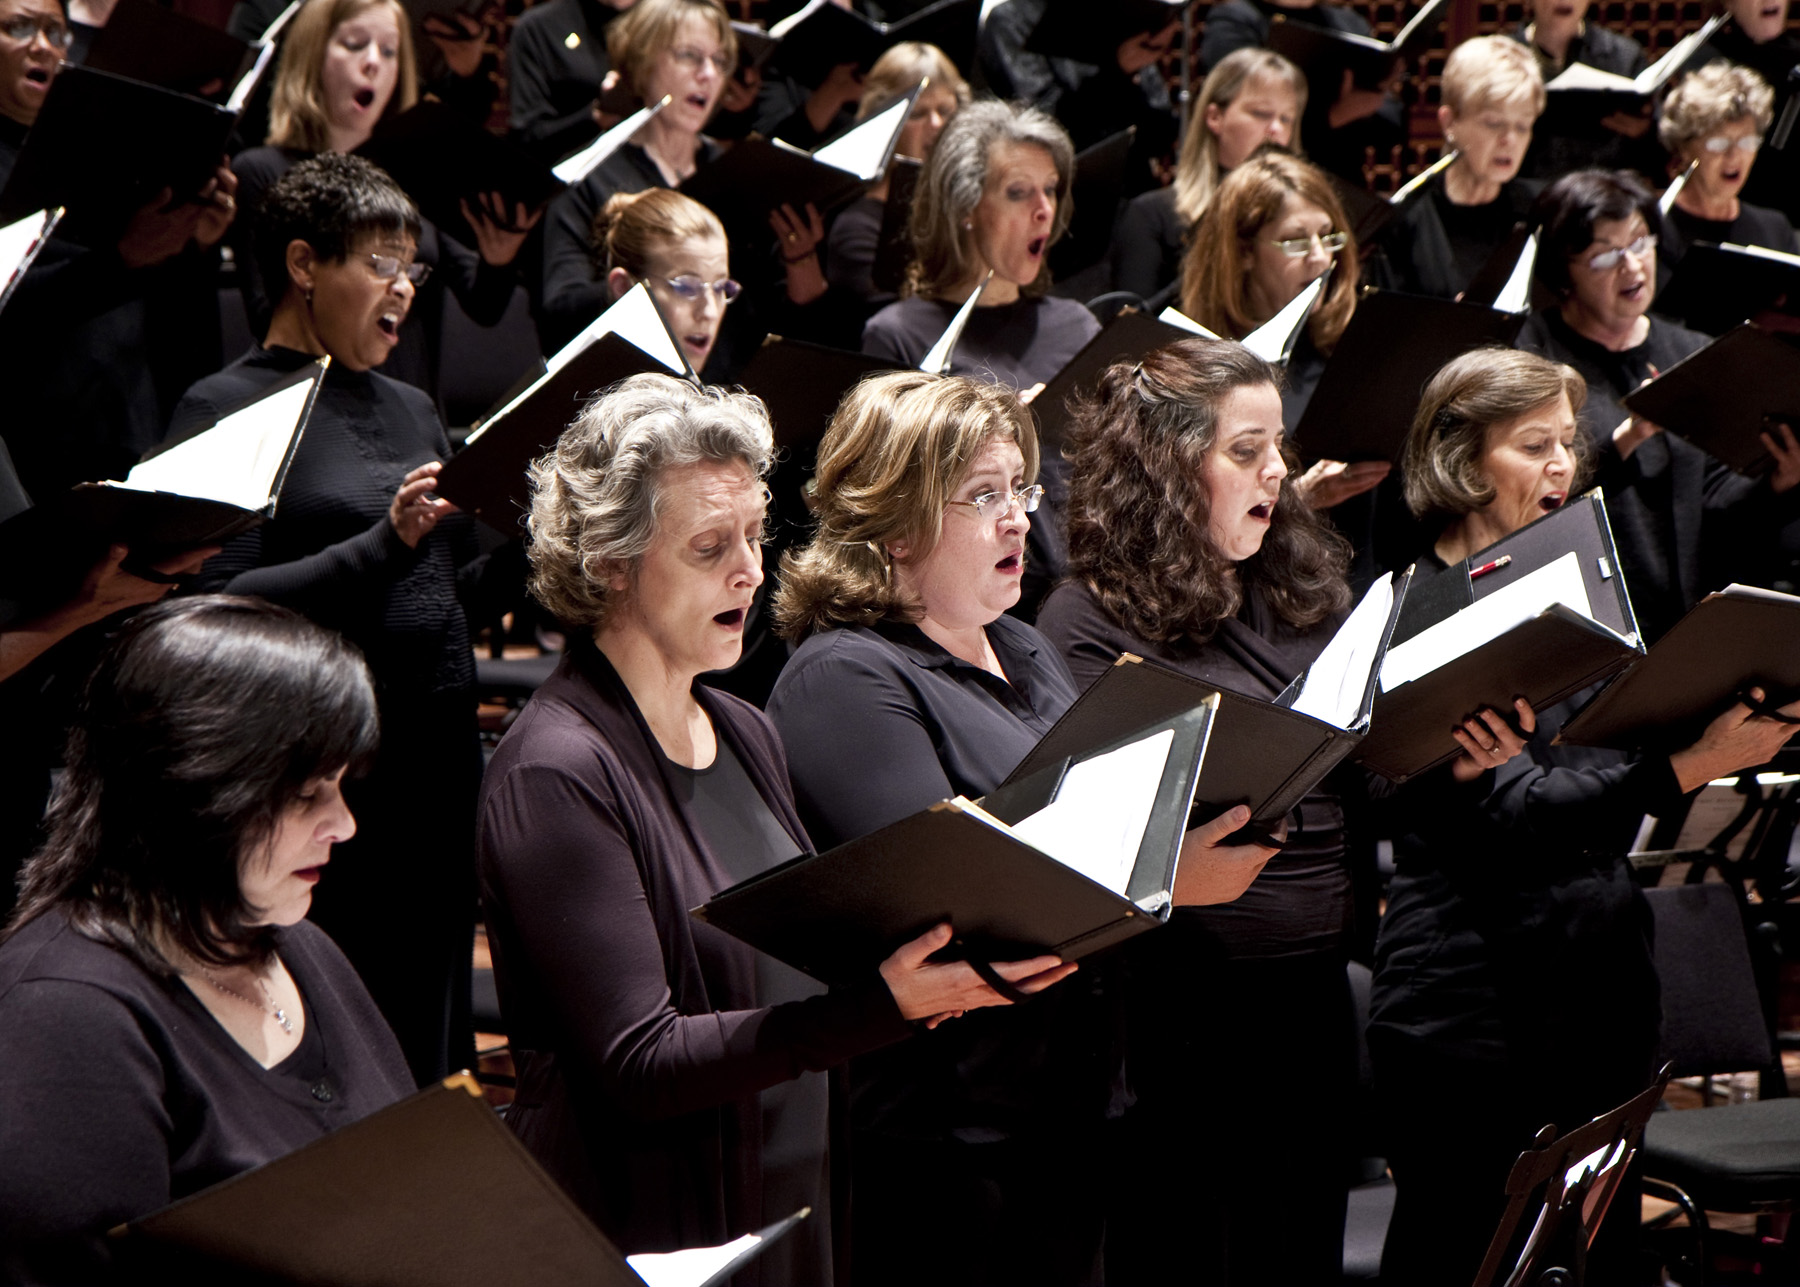 Concert Choir Course Overview - danville.k12.pa.us